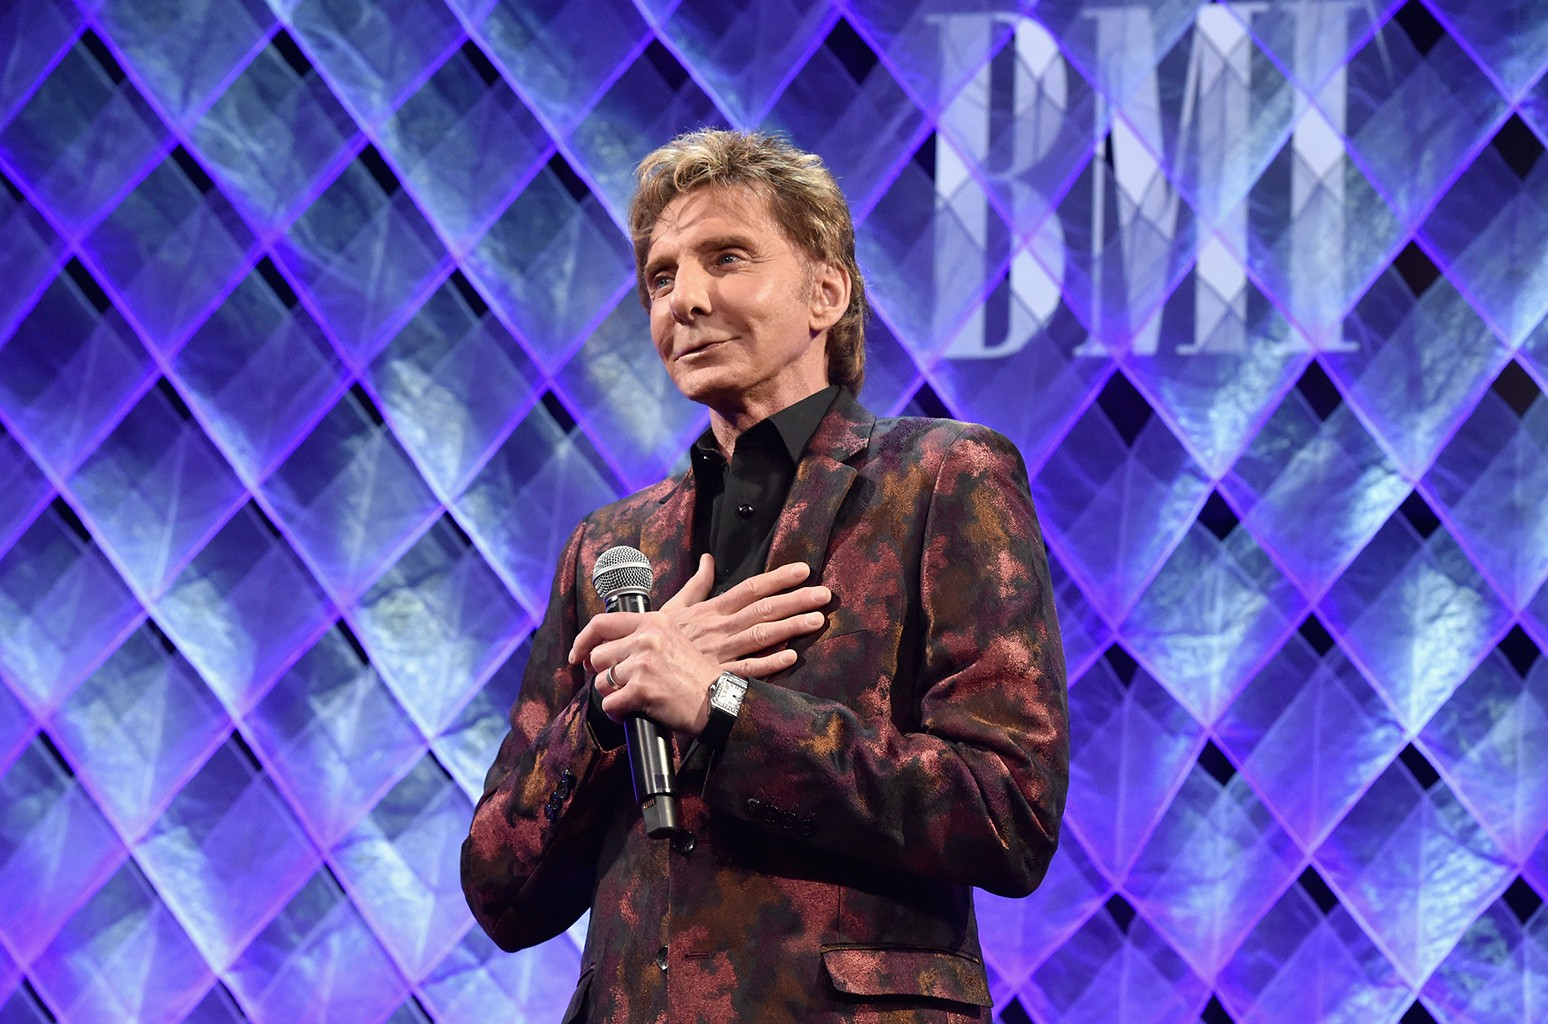 Barry Manilow accepts the BMI Icon Award at the Broadcast Music, Inc (BMI) honors Barry Manilow at the 65th Annual BMI Pop Awards on May 9, 2017 in Los Angeles, California.  (Photo by Lester Cohen/Getty Images for BMI) *** Local Caption *** Barry Manilow